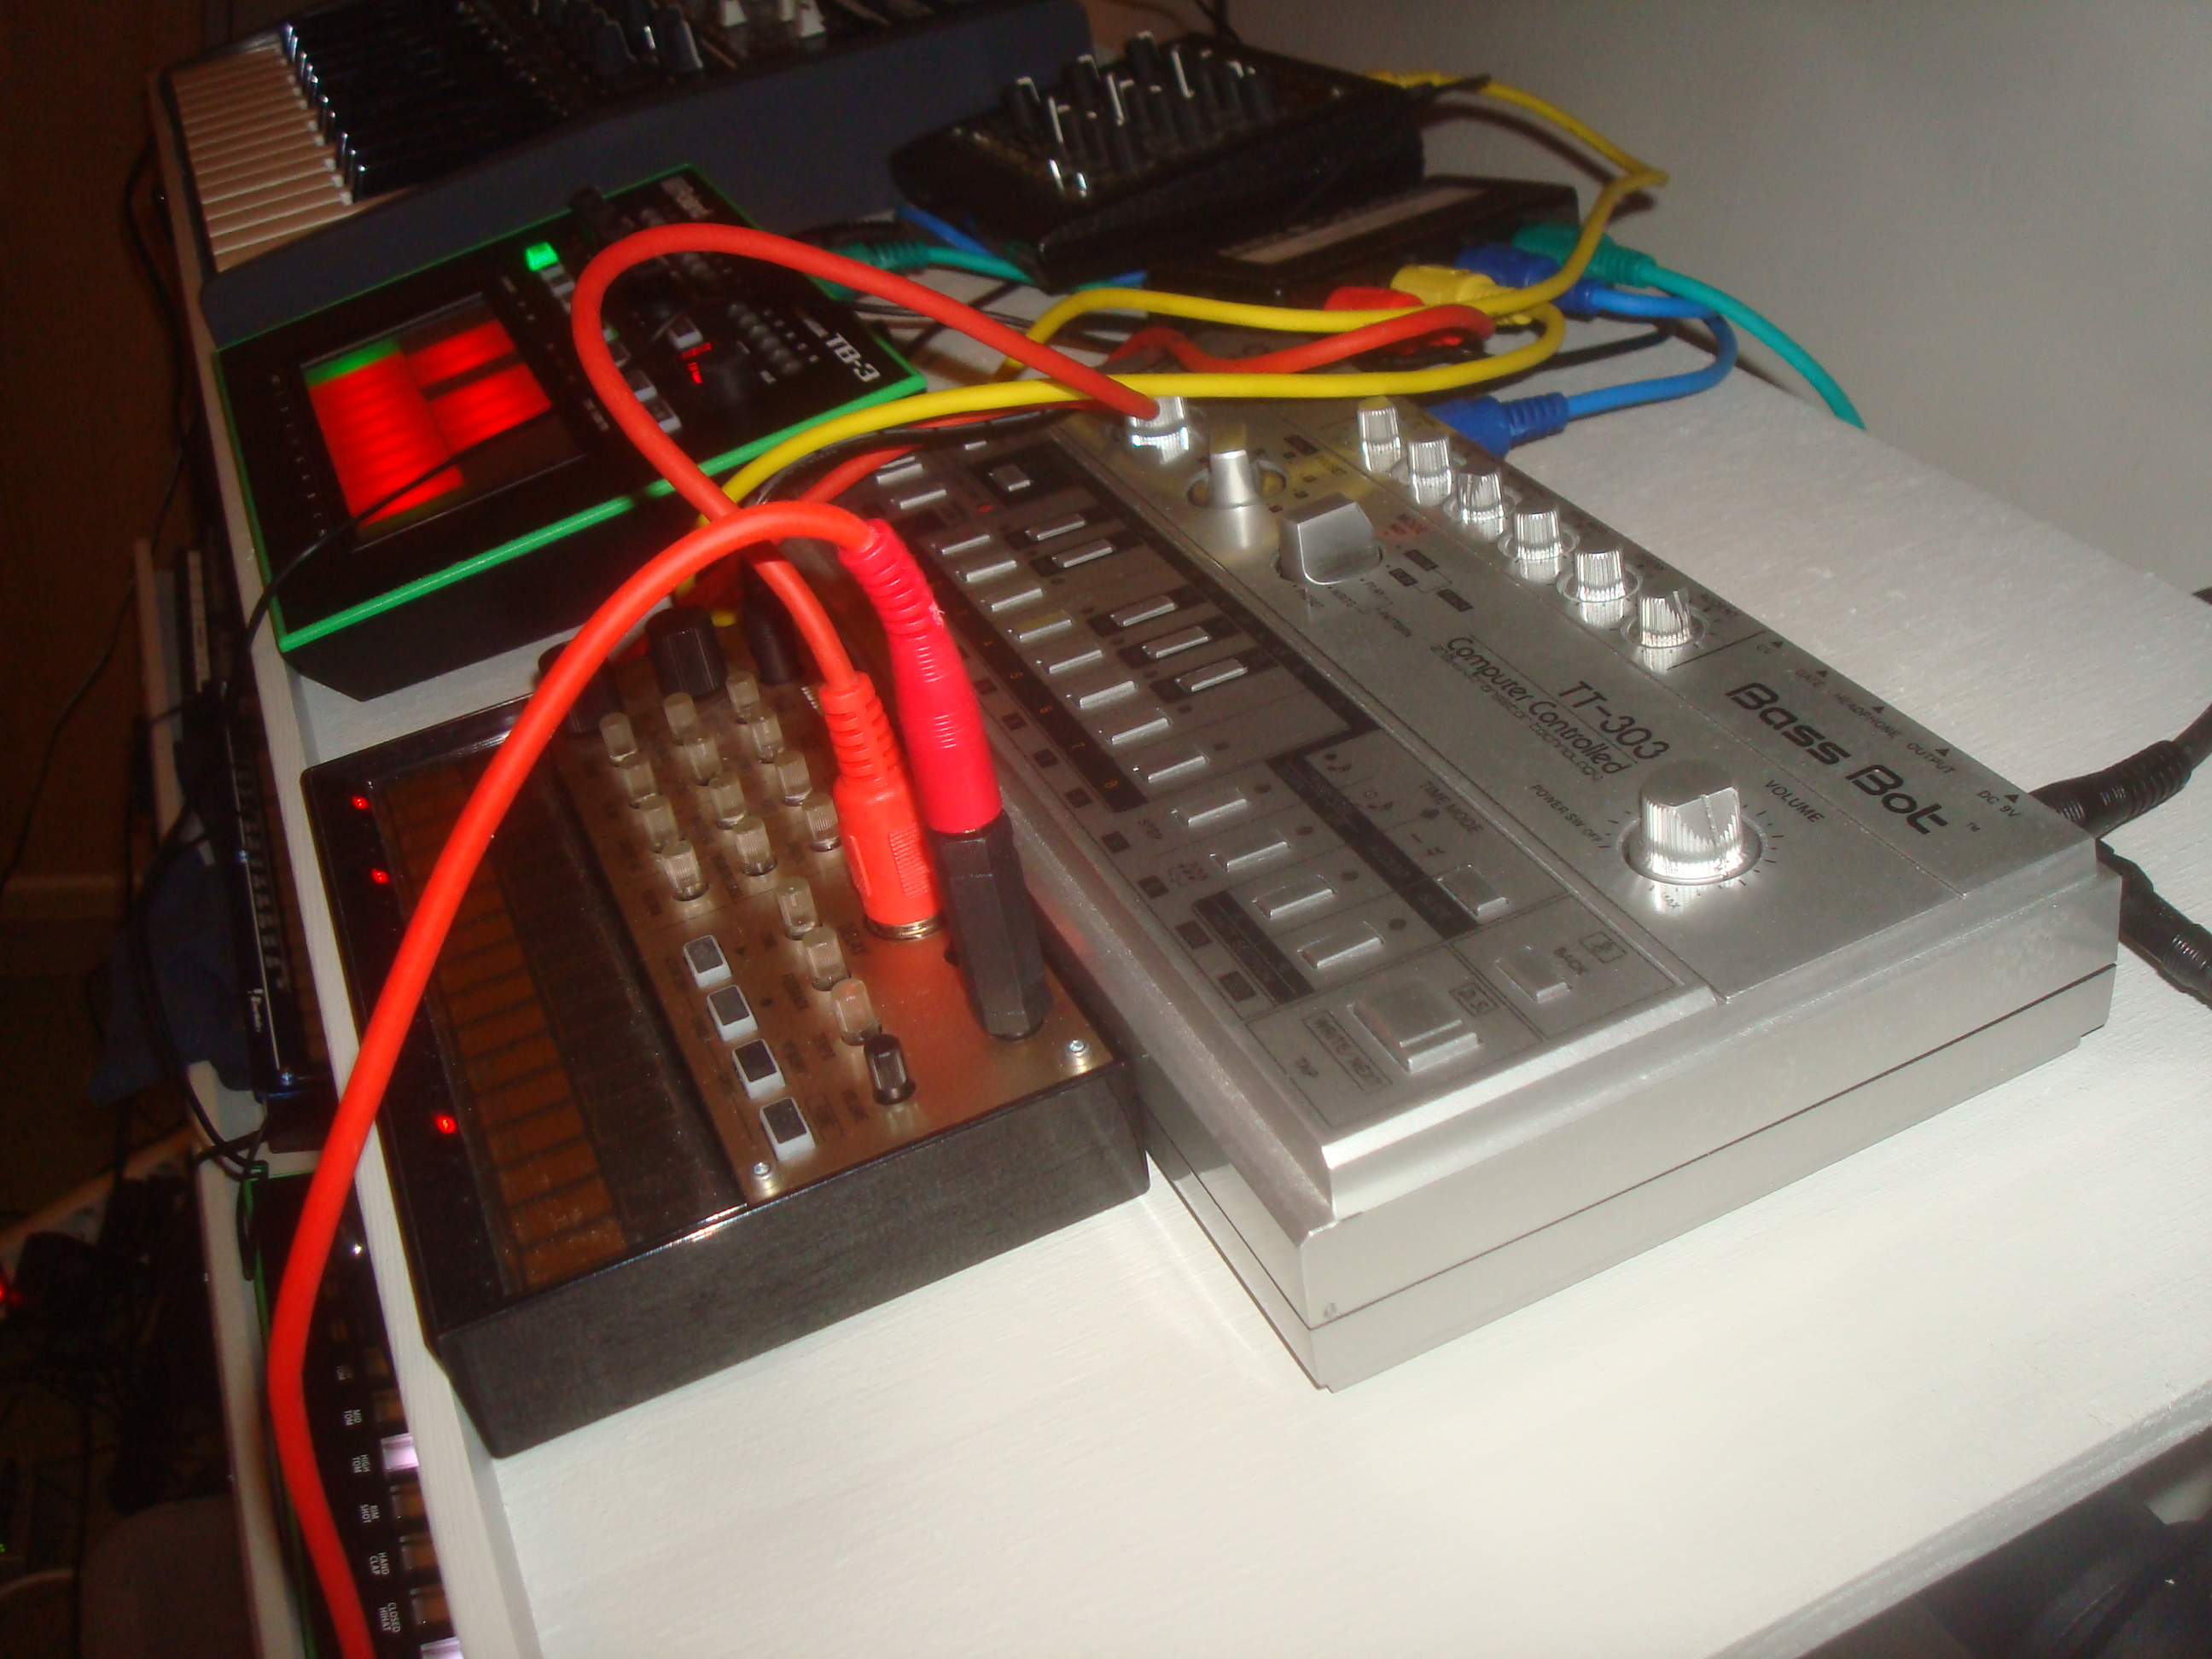 Fileacid Bass Machines And Cables Mfb Synth Lite Roland Aira Tb Touch Audio Wiring